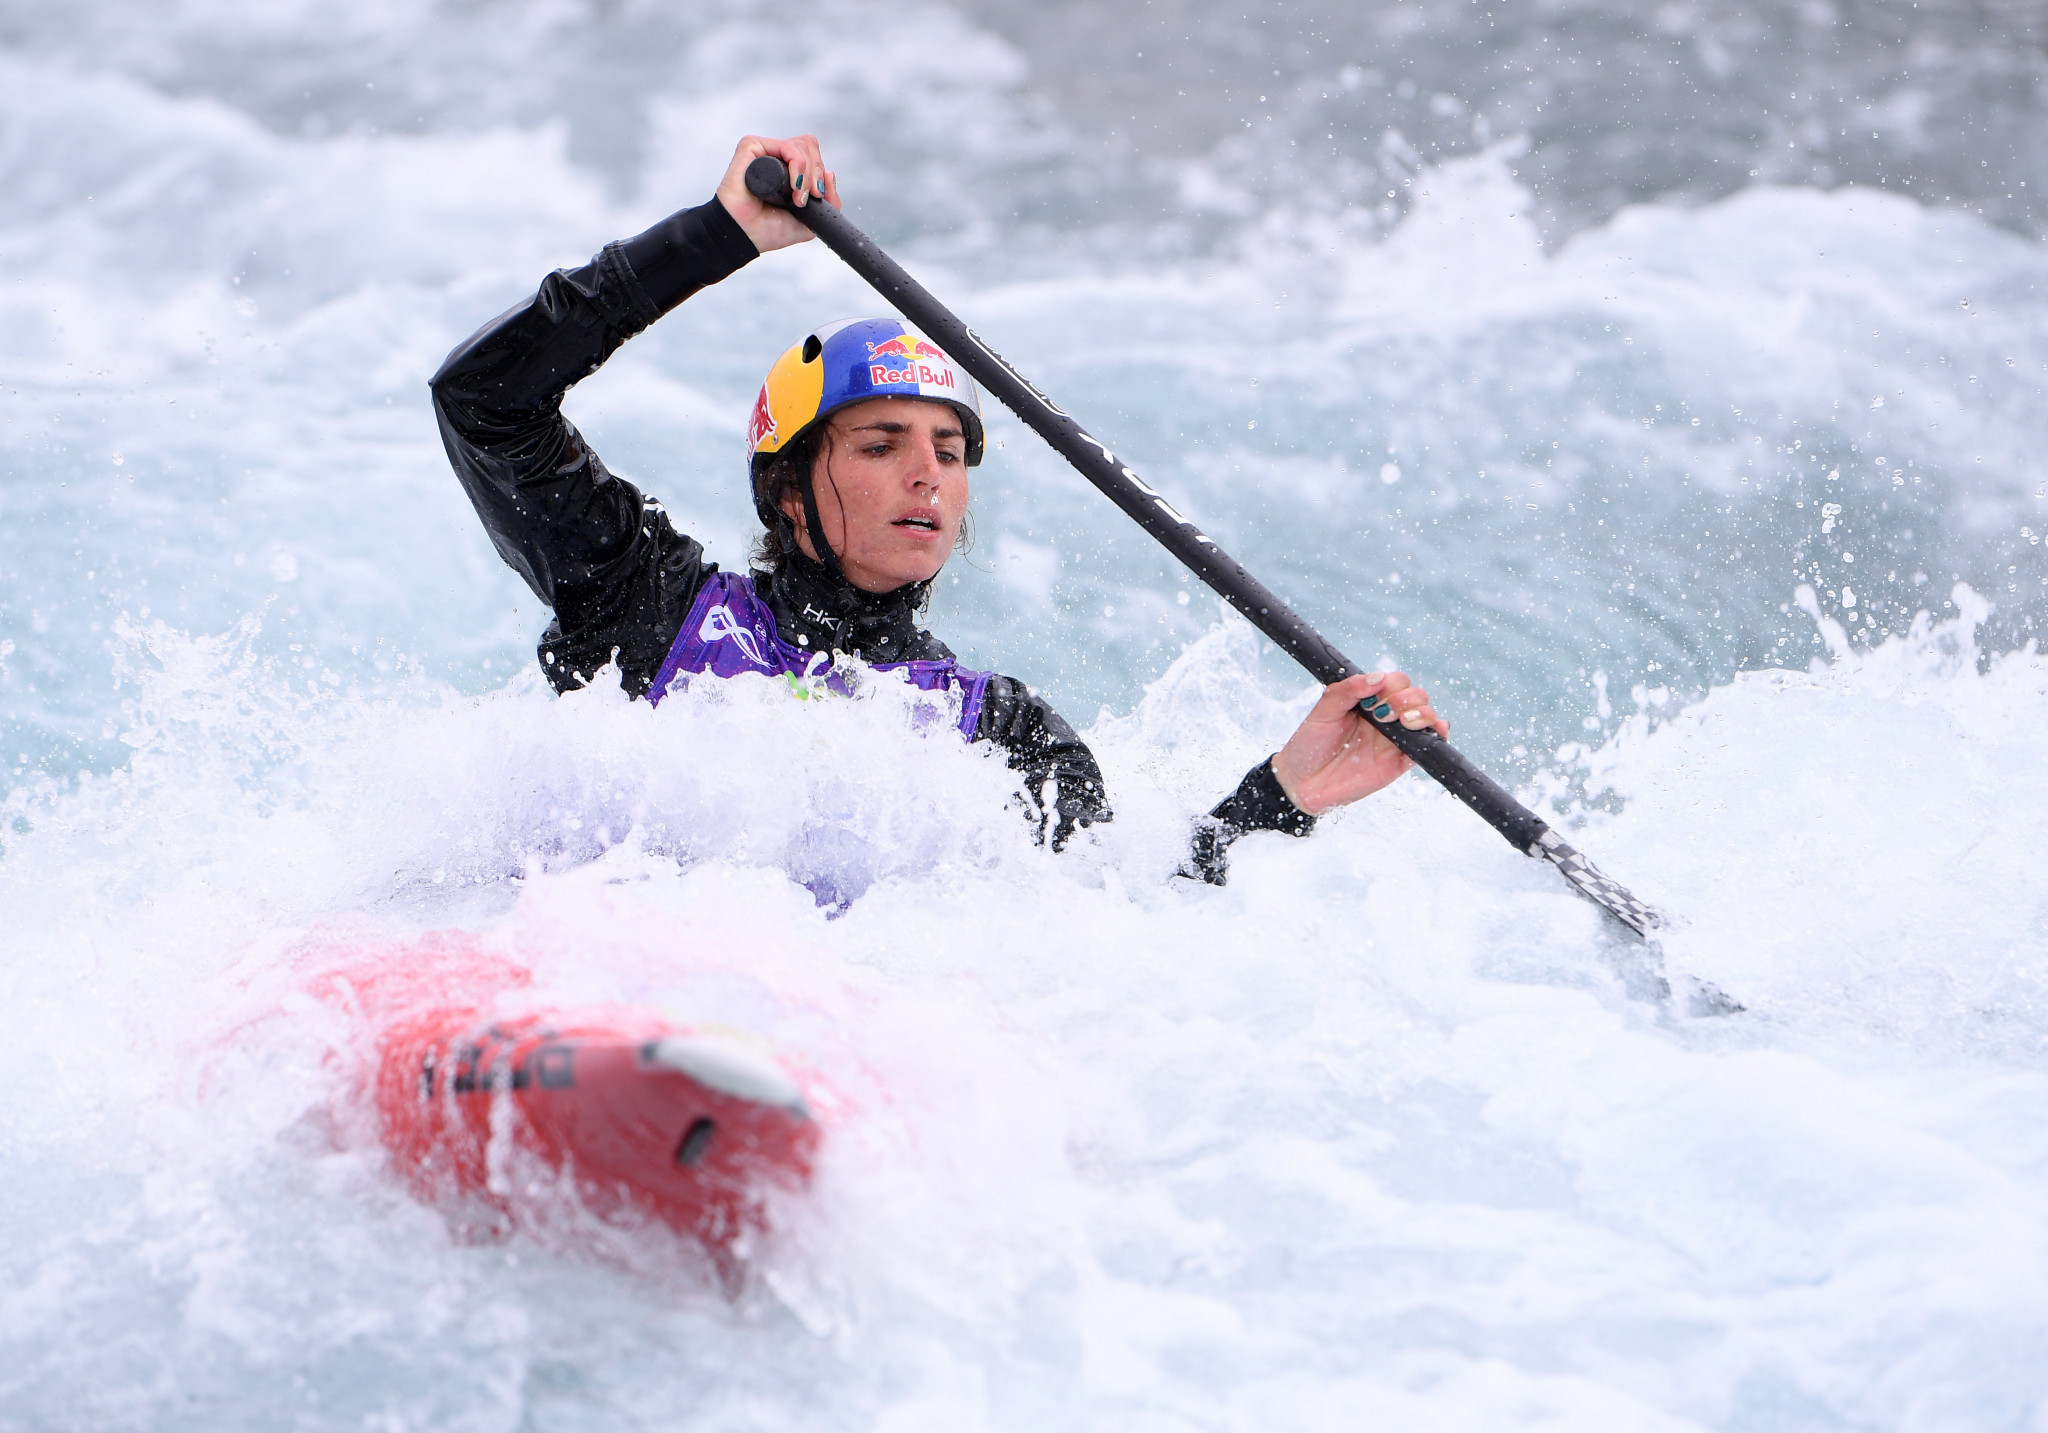 Australian Olympic canoe slalom team return with victories following COVID-19 break